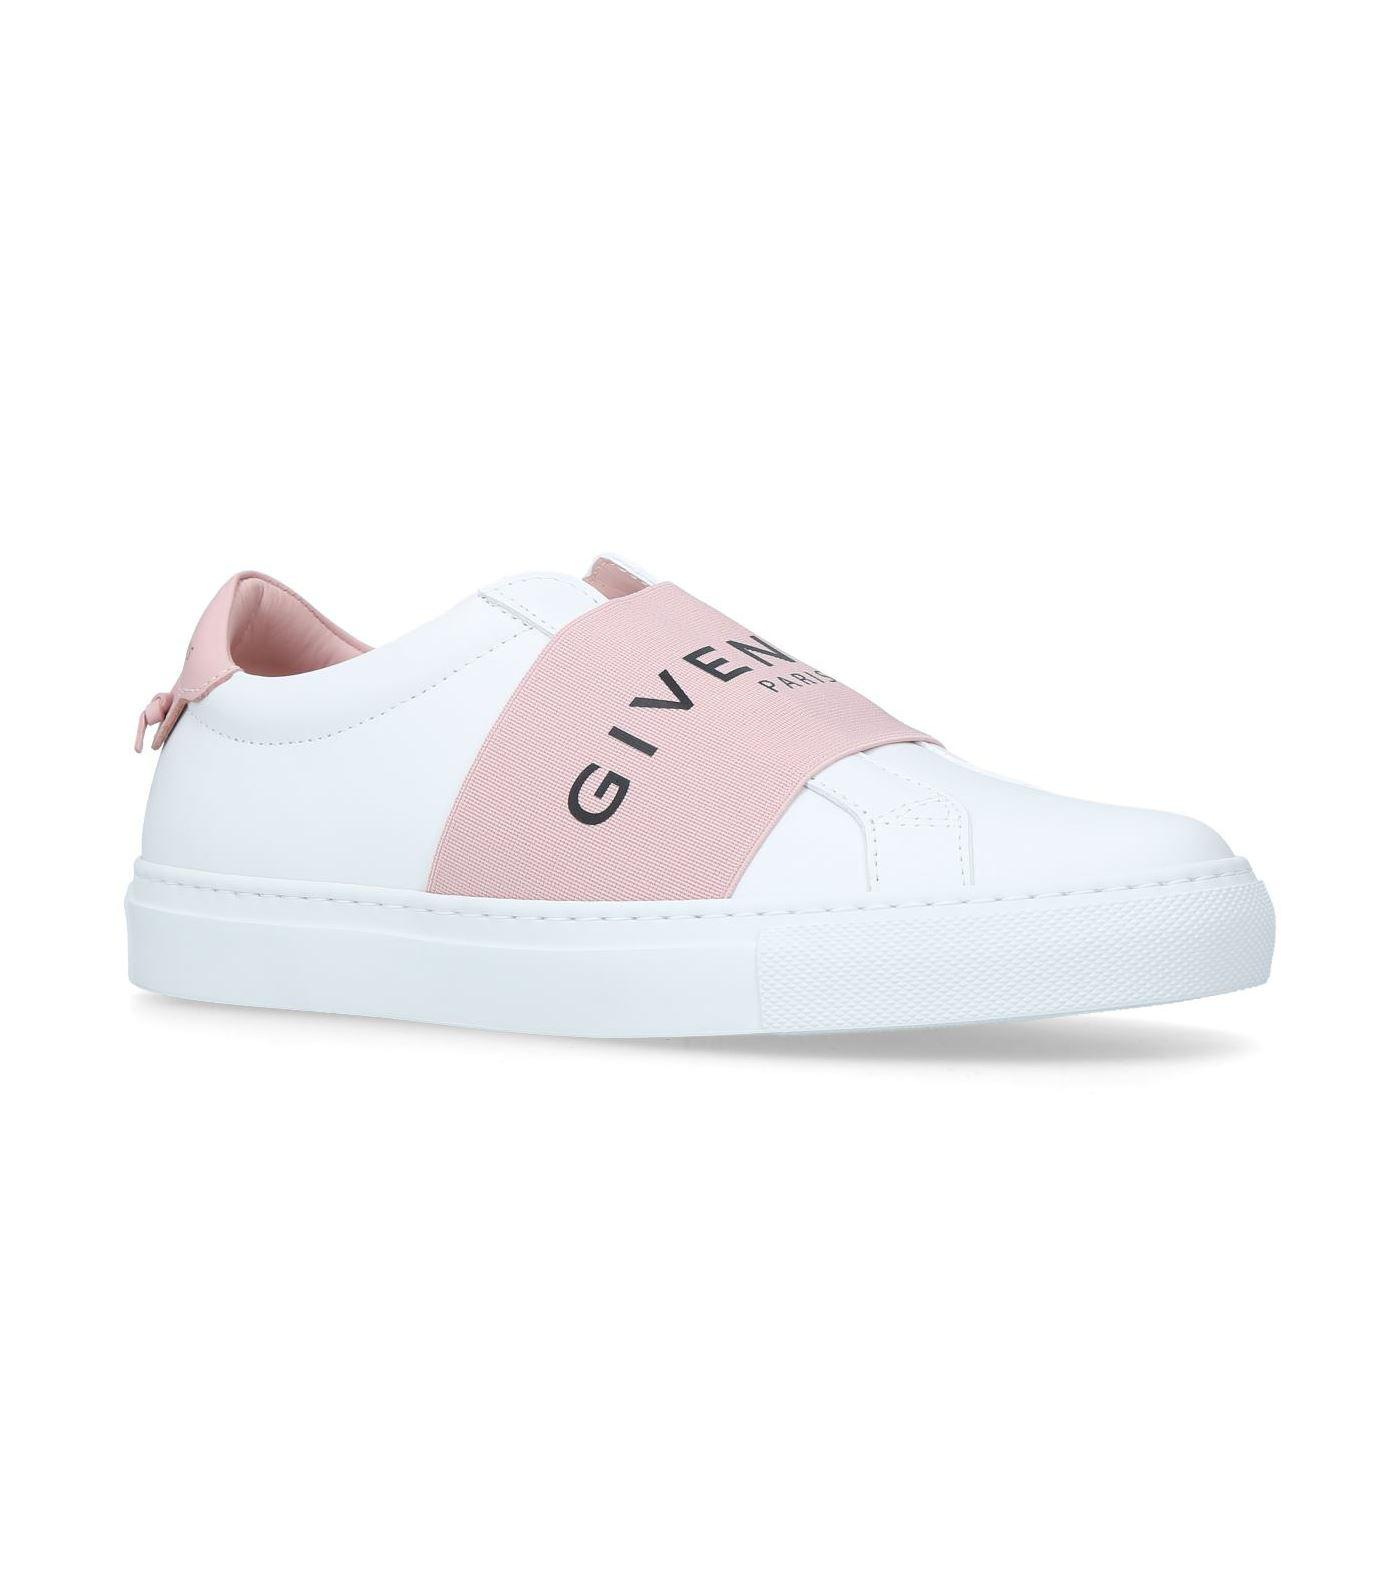 Givenchy Logo Strap Sneakers in Pink - Lyst